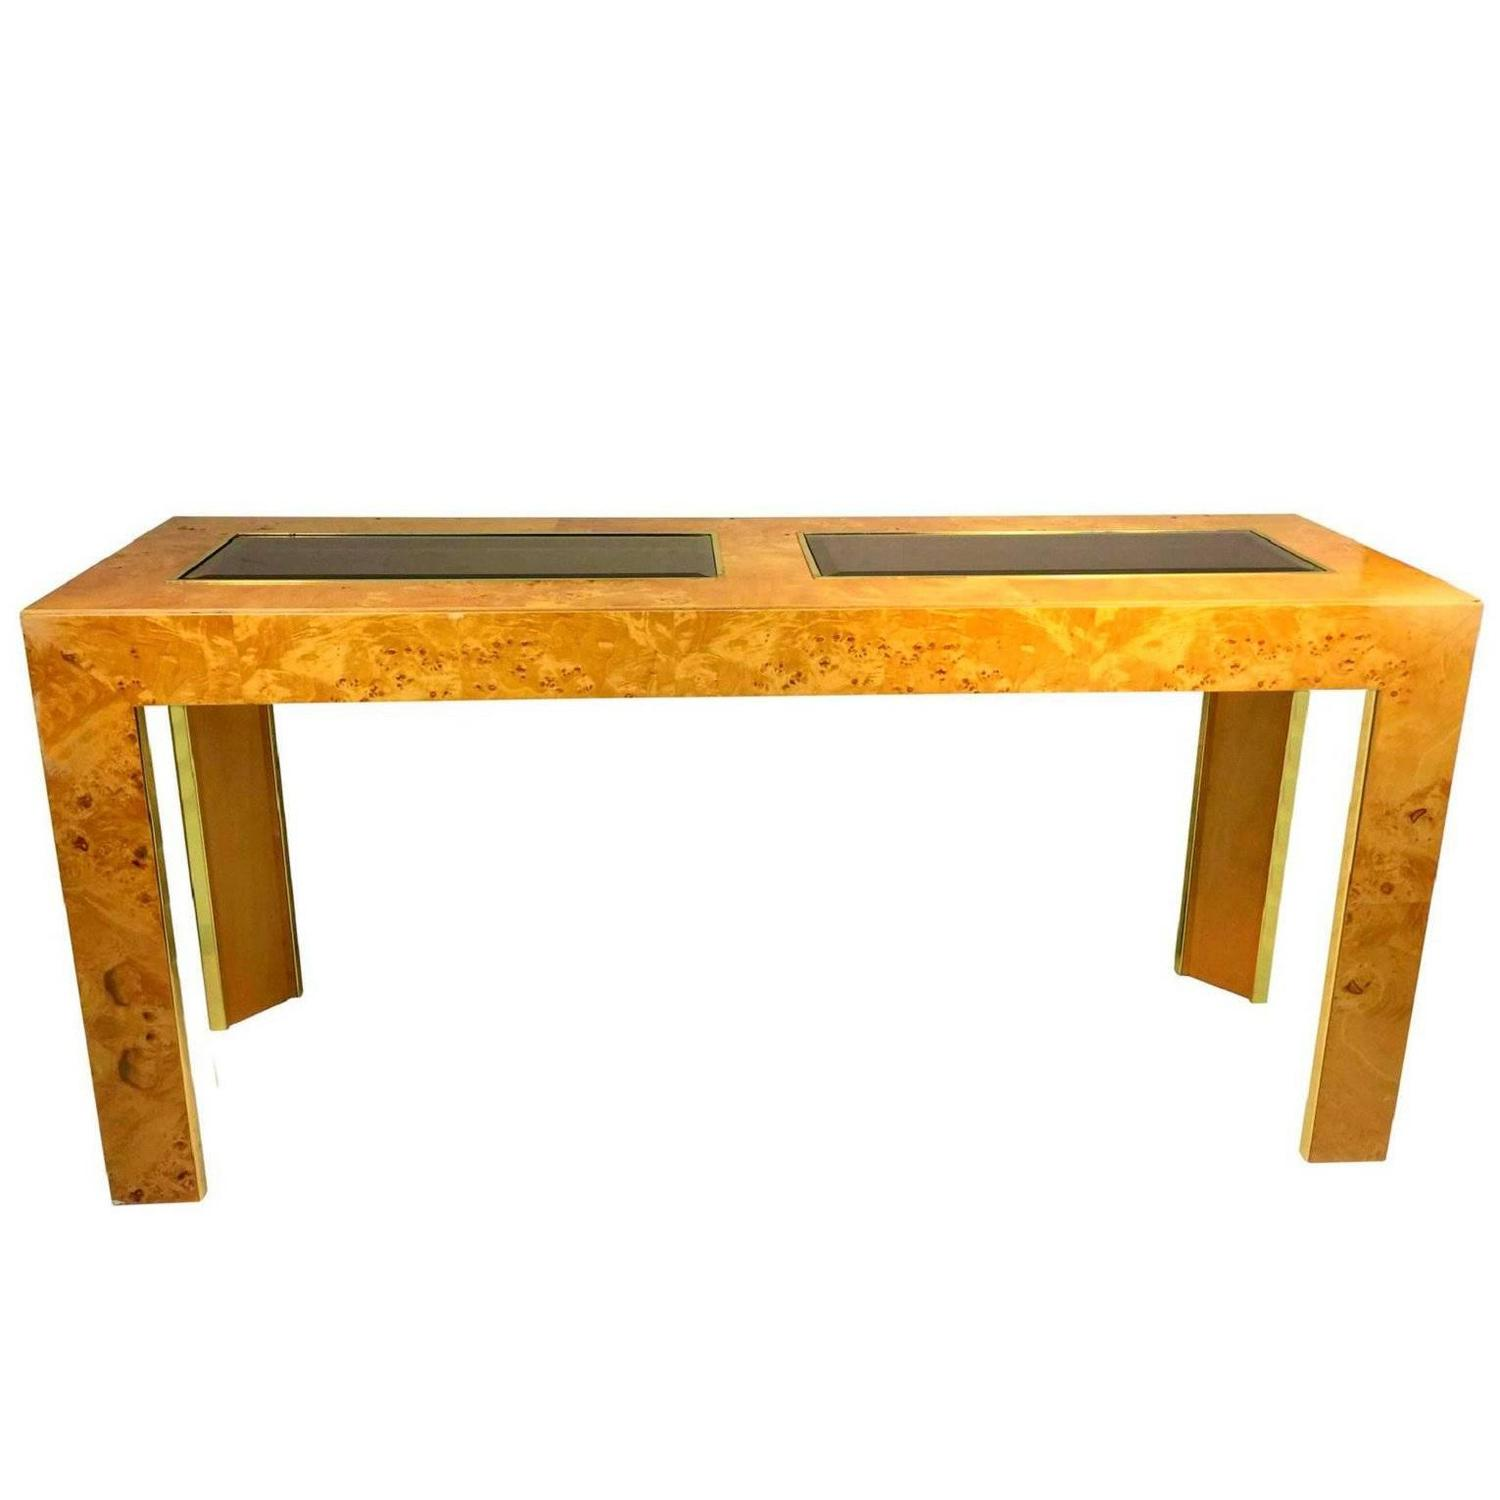 Burl Olive Ash Console or Sofa Table by Thomasville For Sale at